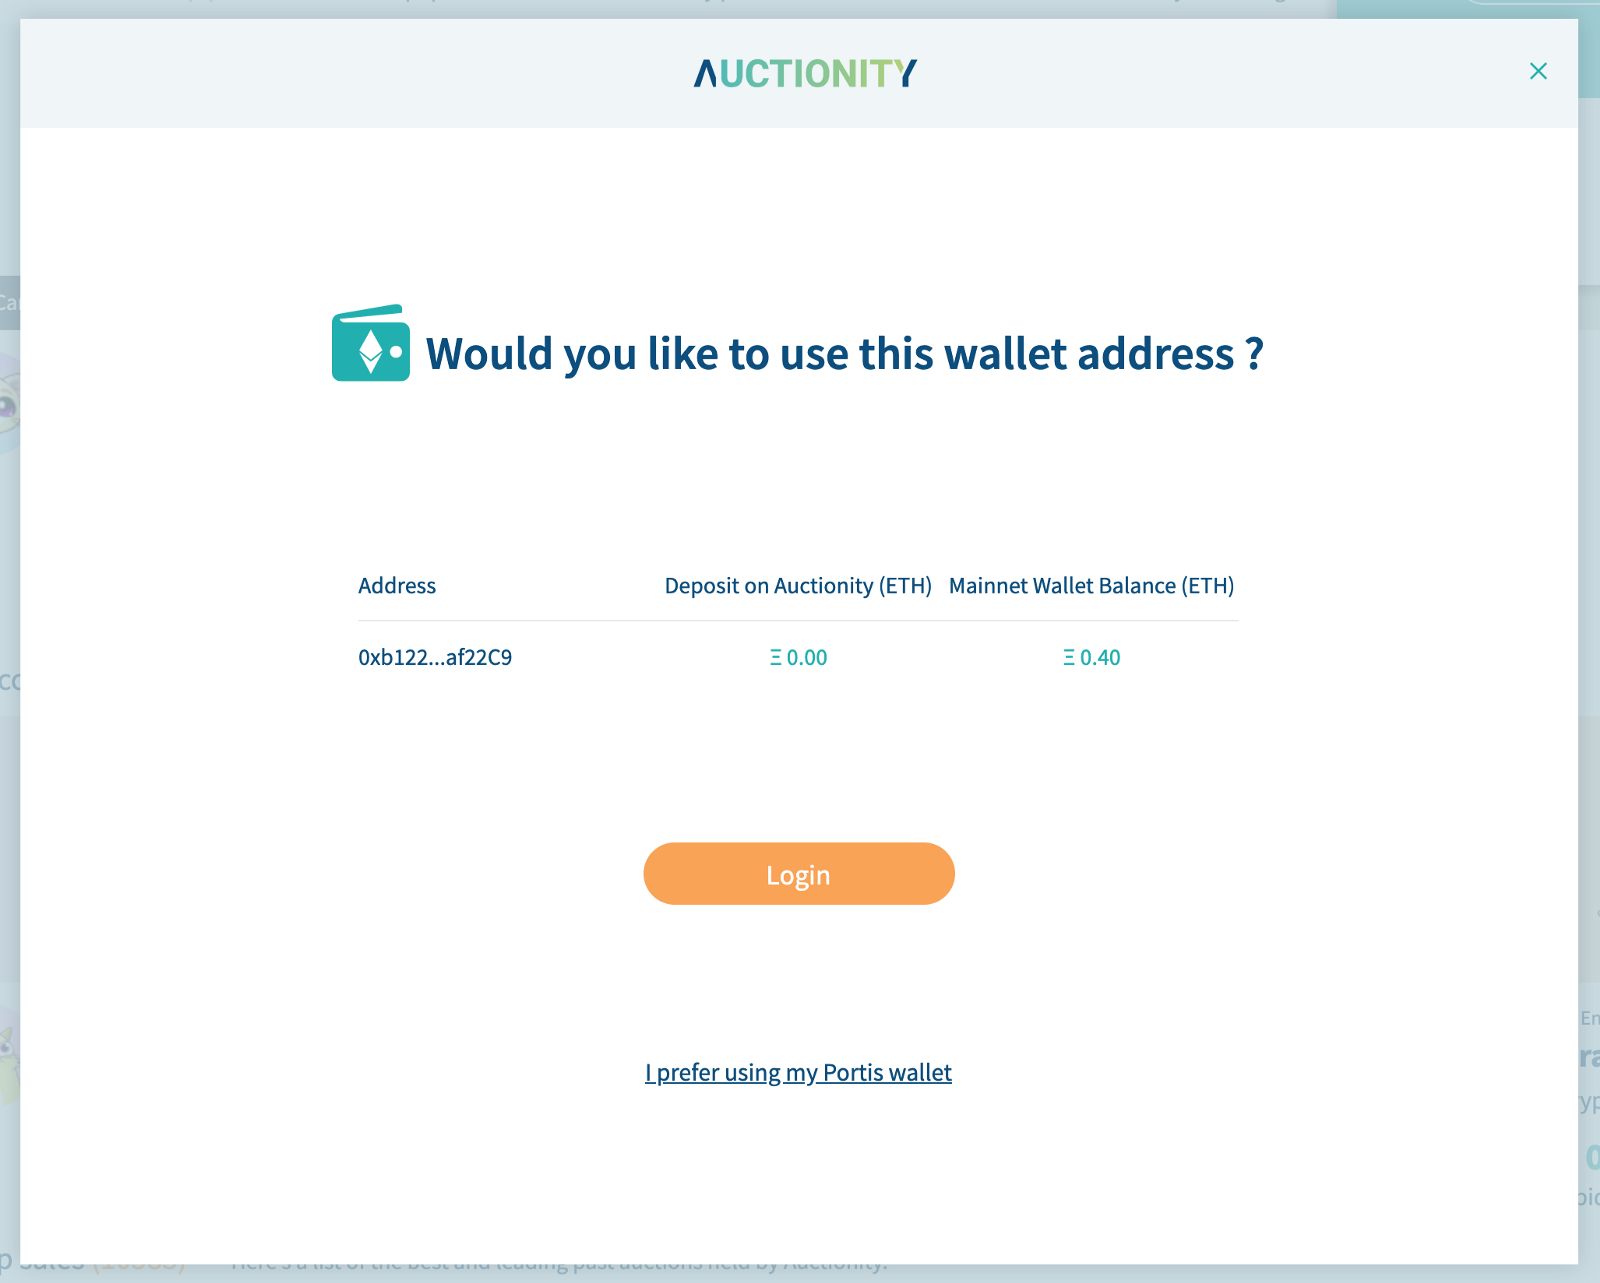 Would you like to use this wallet address on Auctionity?